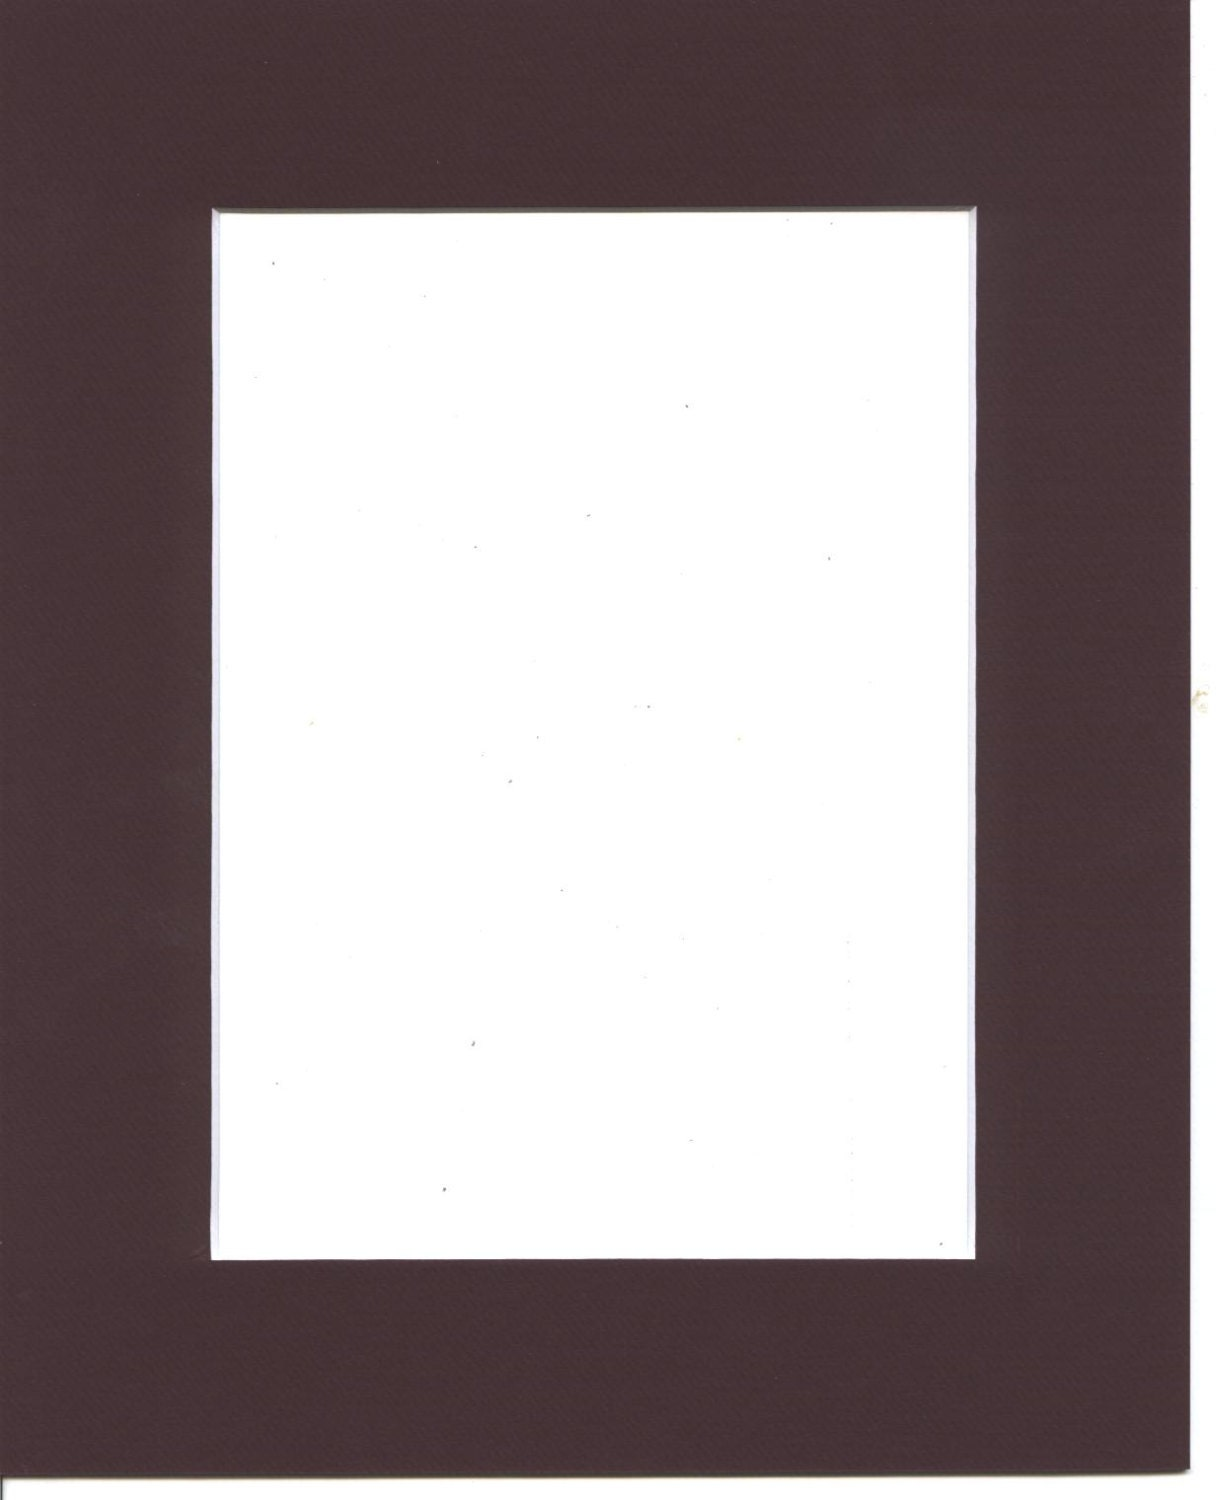 Package Of 10 8x10 Maroon Picture Mats With White Core